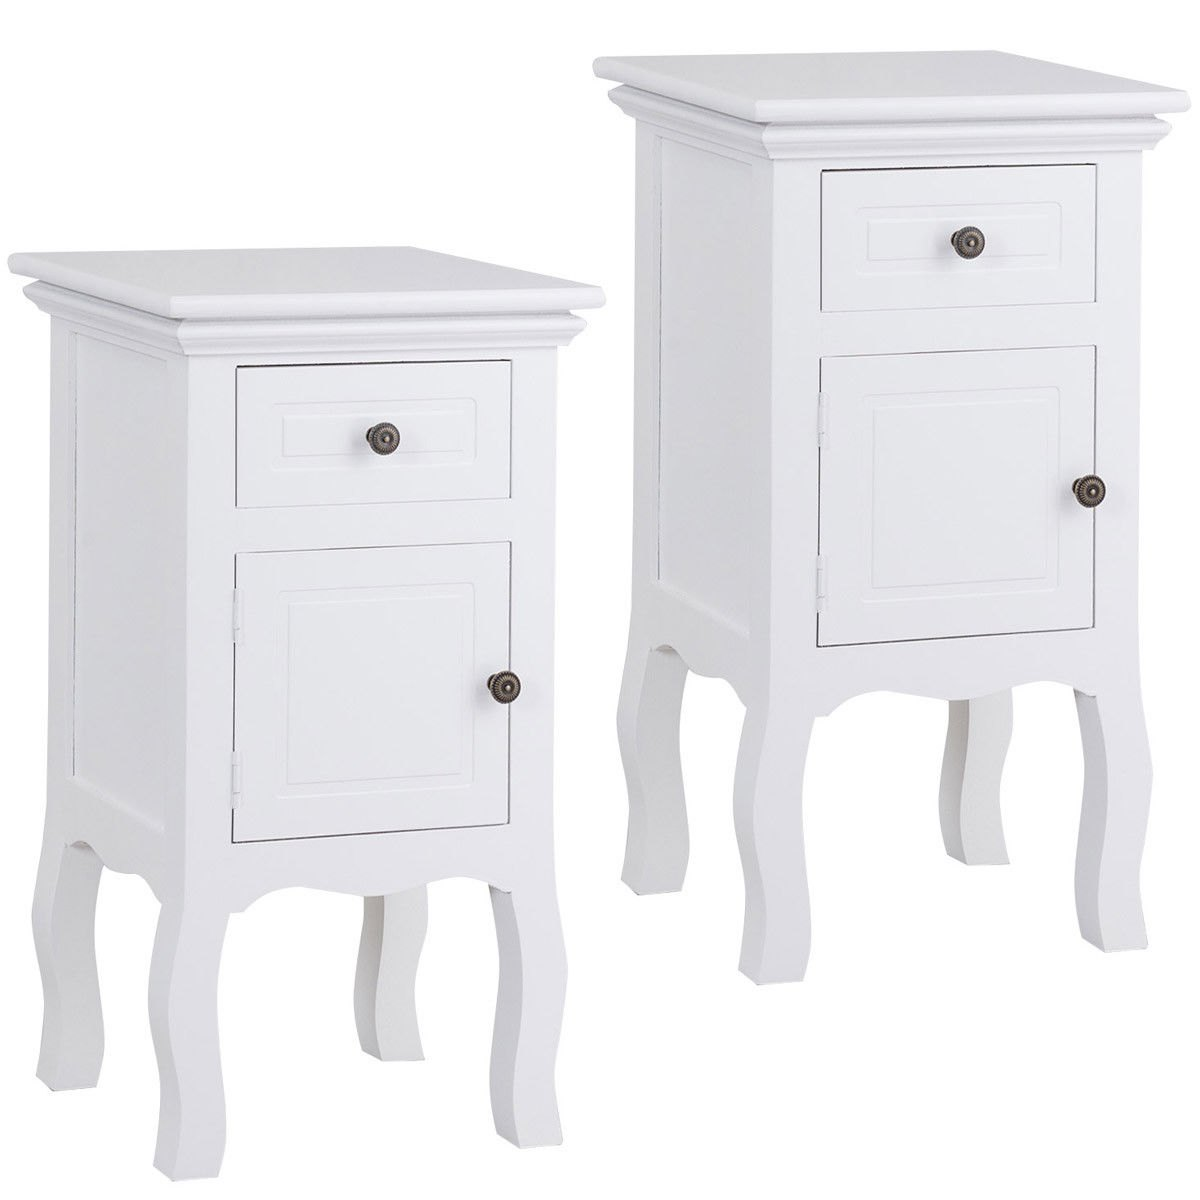 way white nightstand storage drawer and cabinet accent table wood end barn door designs small lights battery operated coffee with lamp attached mini side round tablecloth house